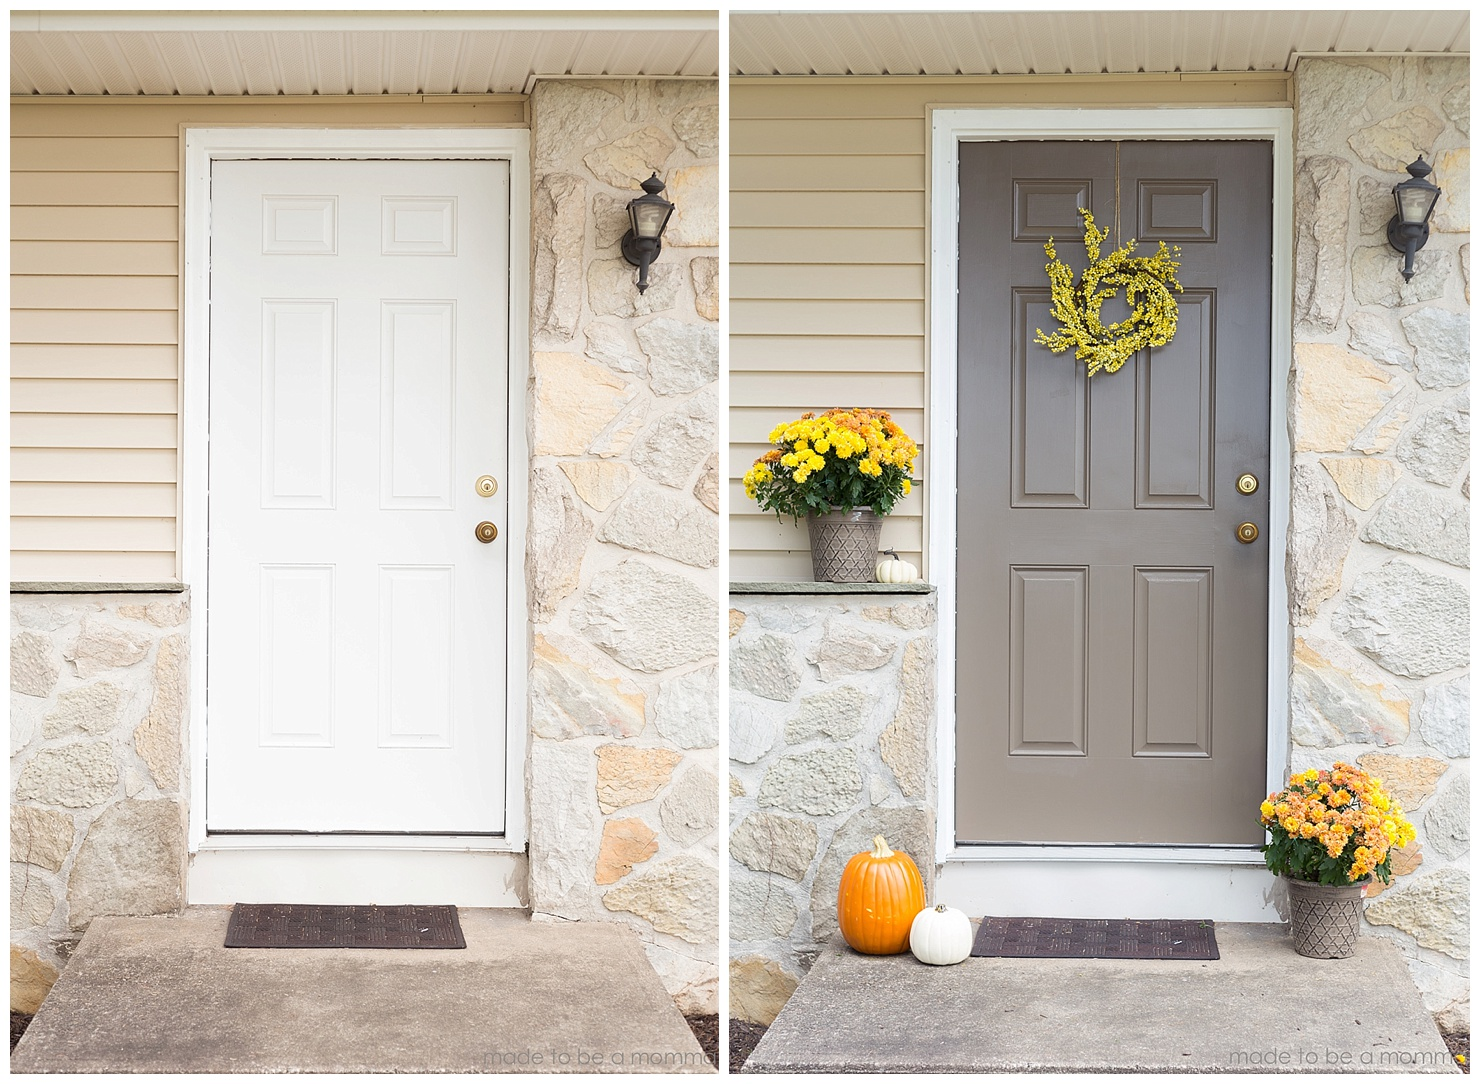 How To Paint A Front Door how to paint a front door | made to be a momma